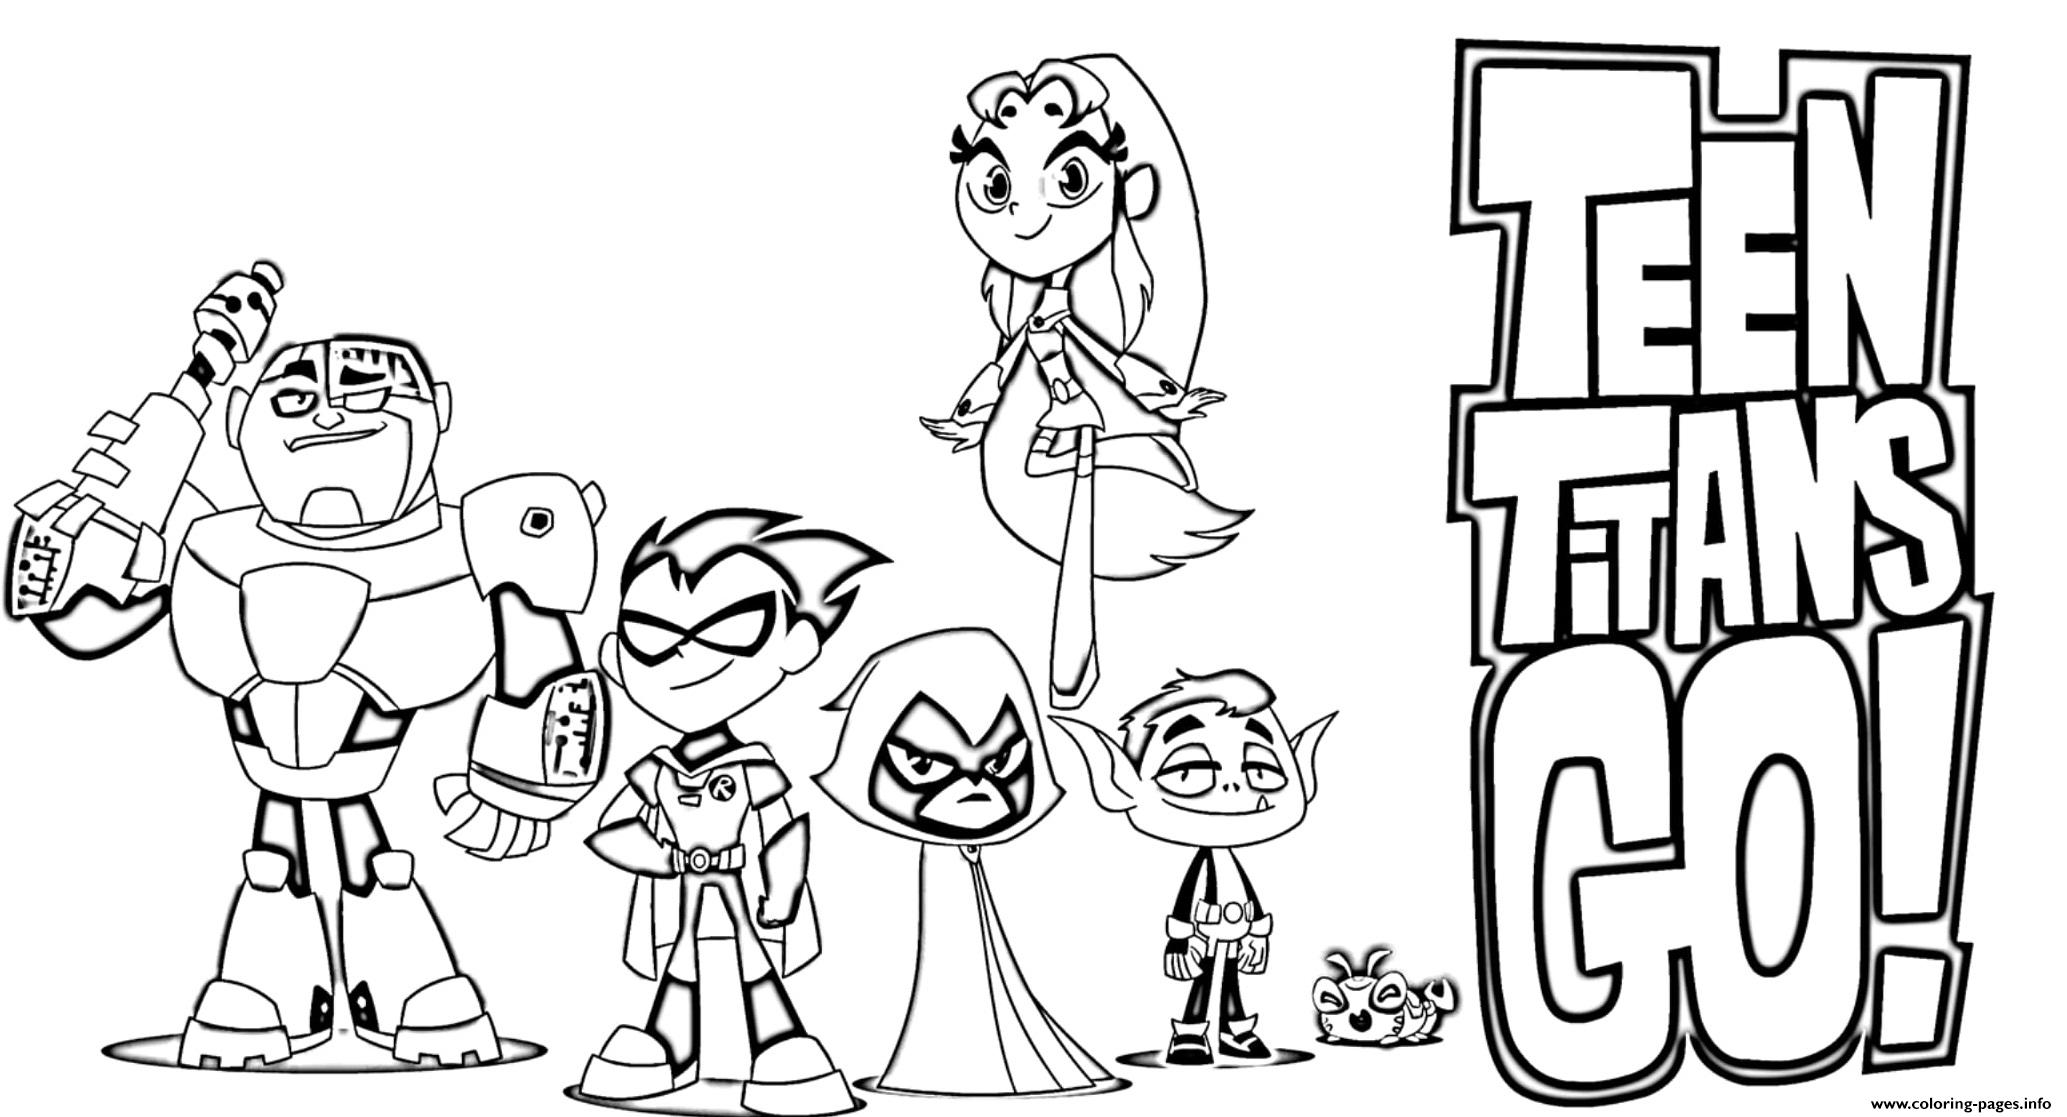 teen titans go coloring printable 1549992986teen highlighters pens owl pictures halloween coloring pages Teen Titans Coloring Page